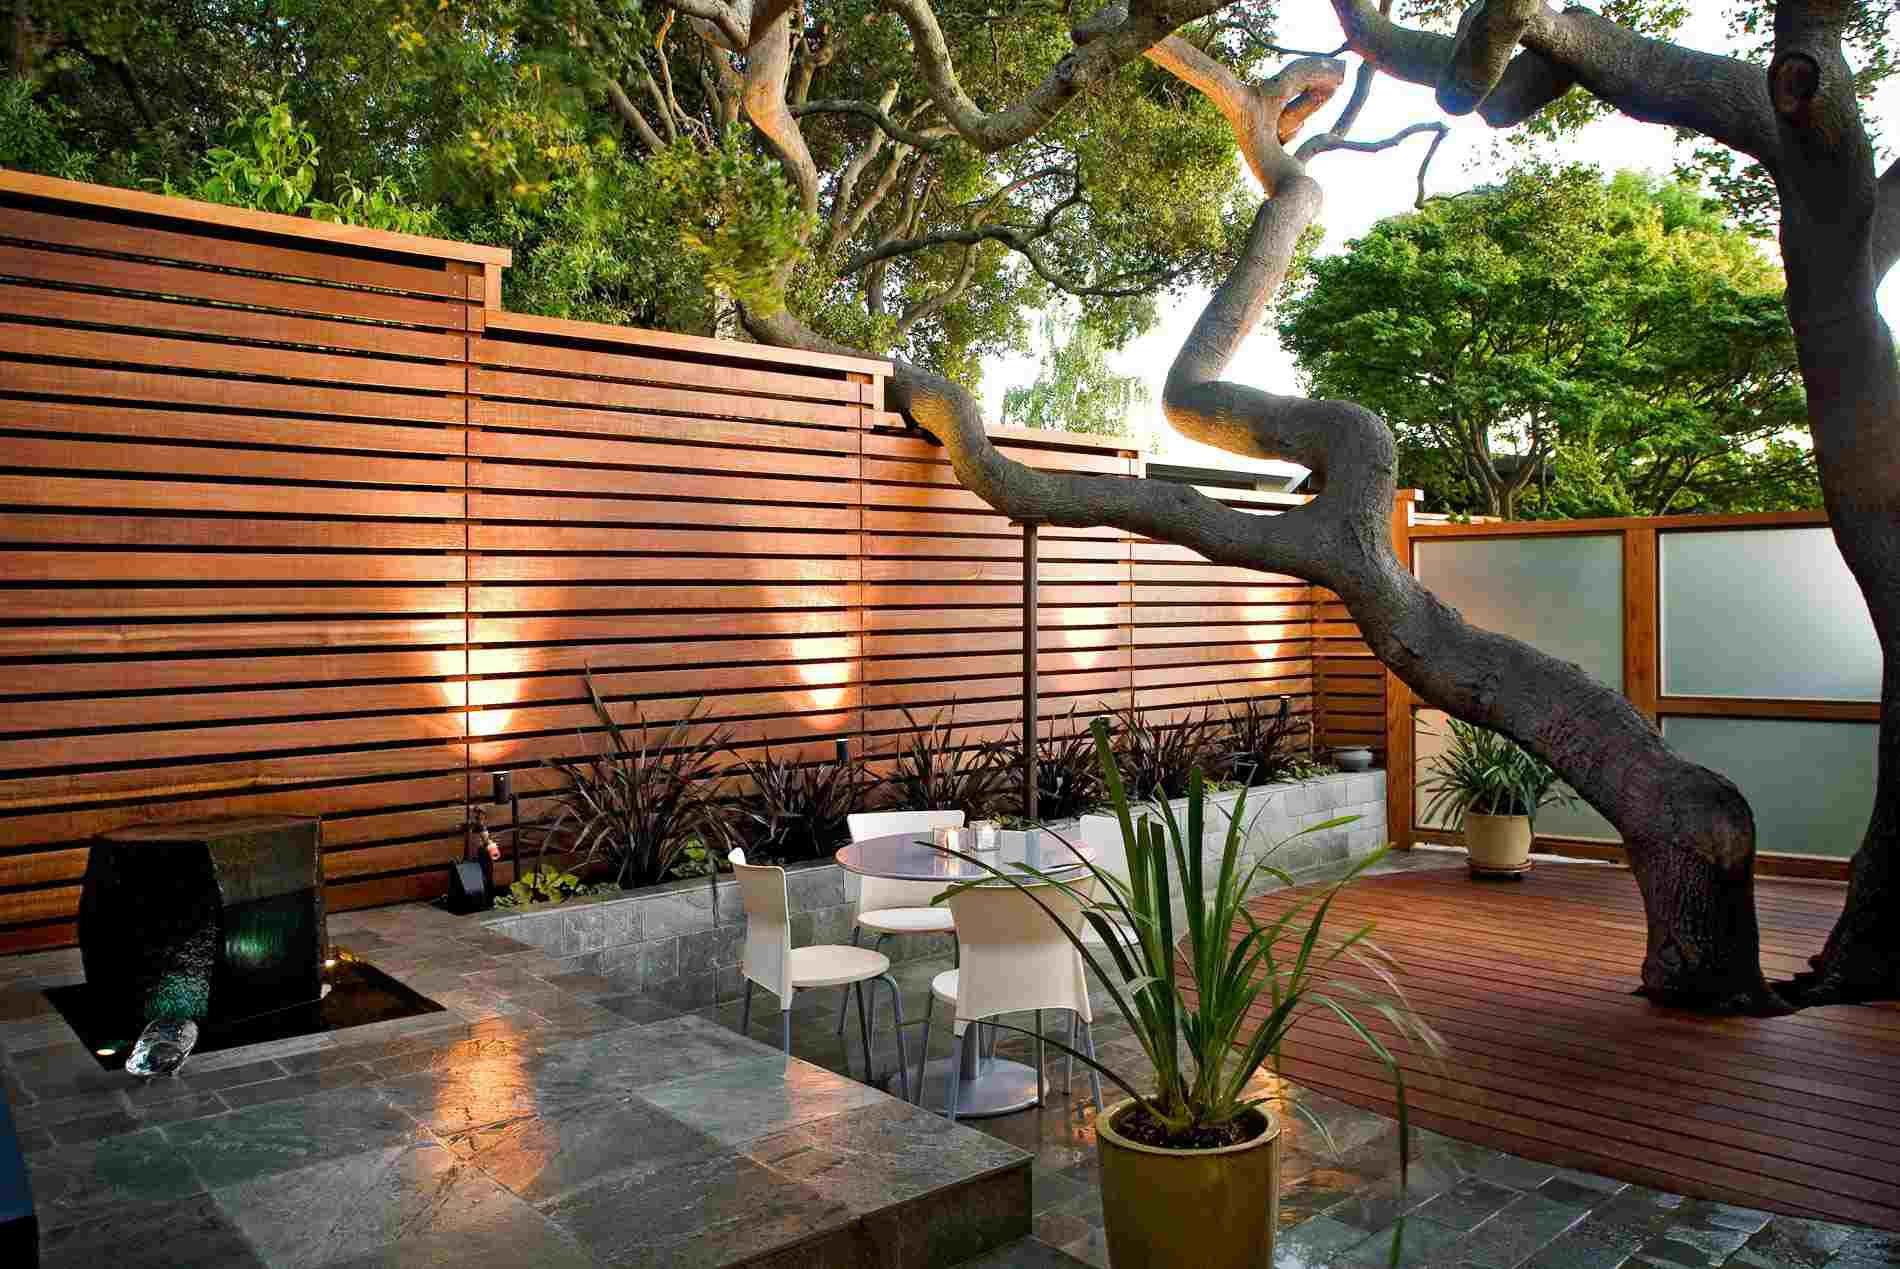 13 Ways To Gain Privacy In Your Yard for Privacy Screen Ideas For Backyard